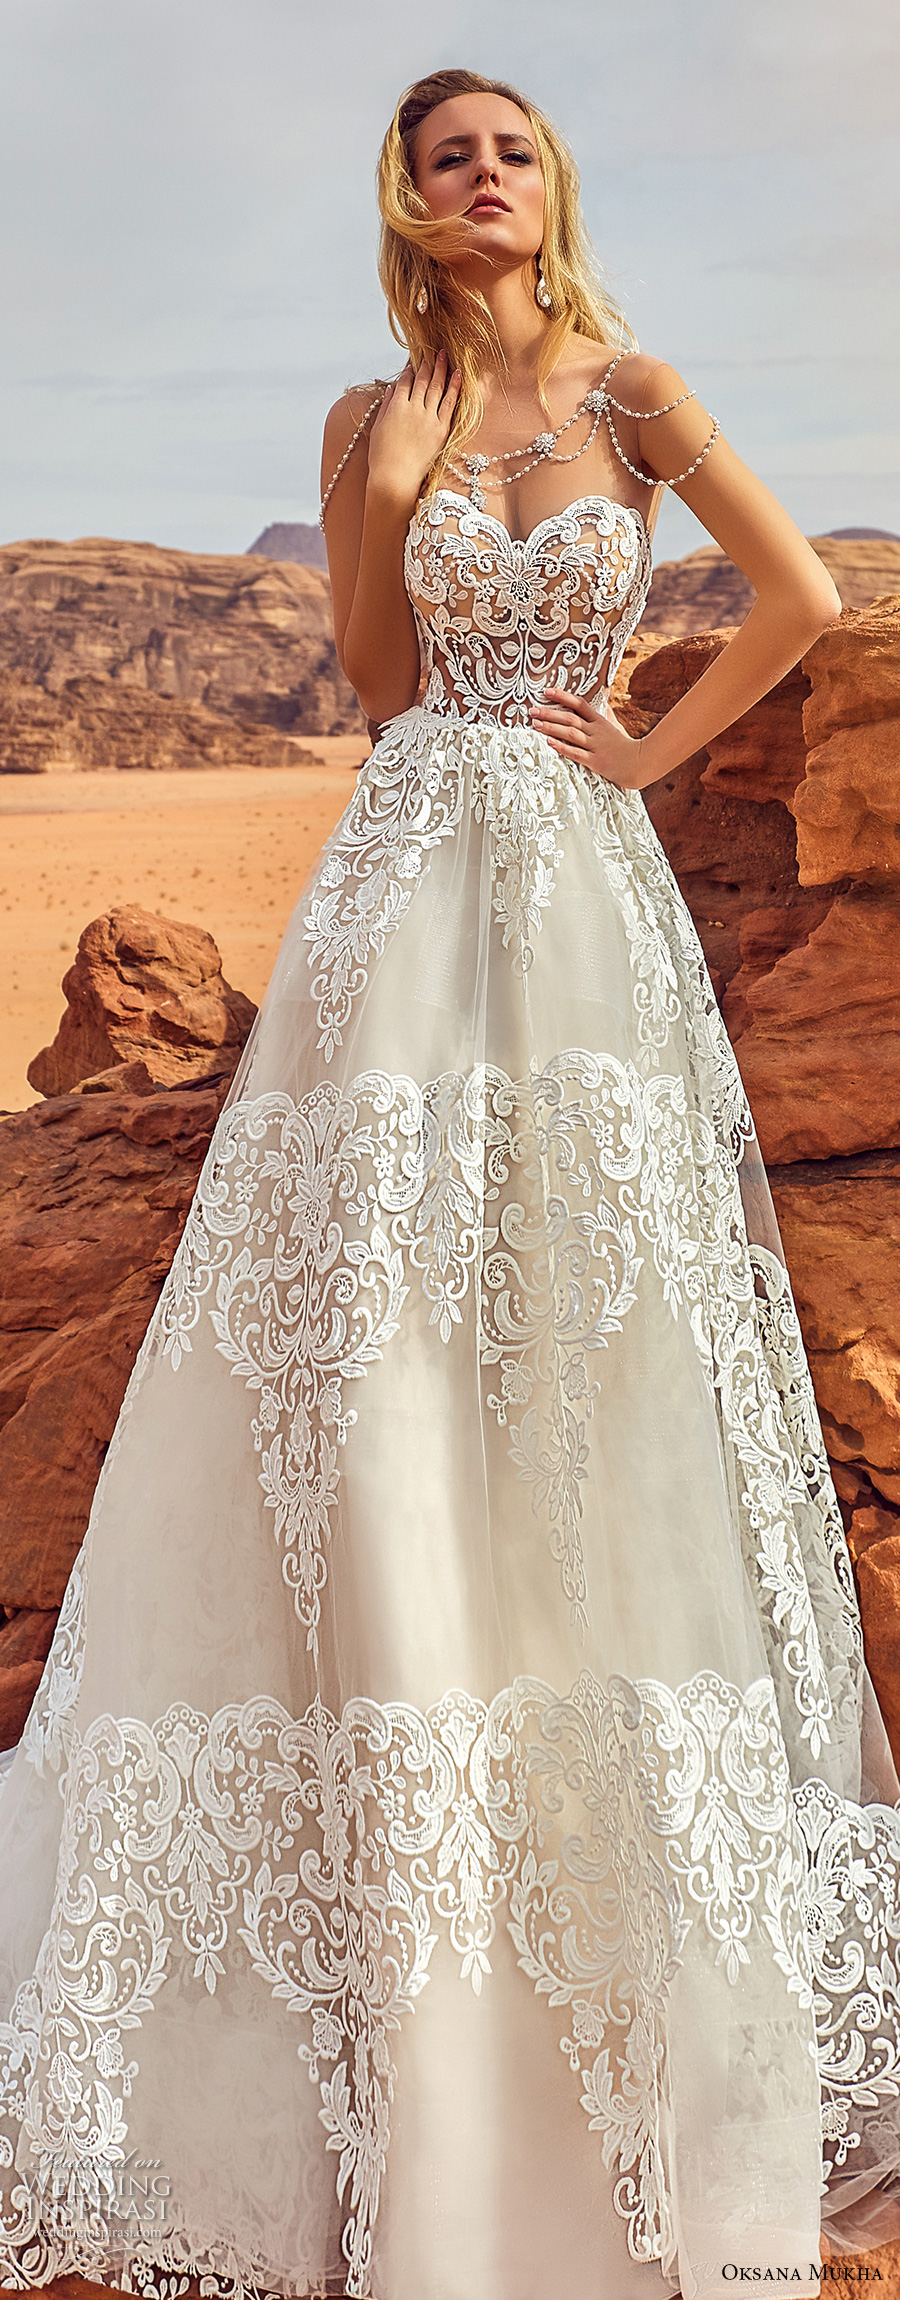 oksana mukha 2018 bridal strapless sweetheart neckline full embellishment romantic elegant a line wedding dress chapel train (esfir) zv